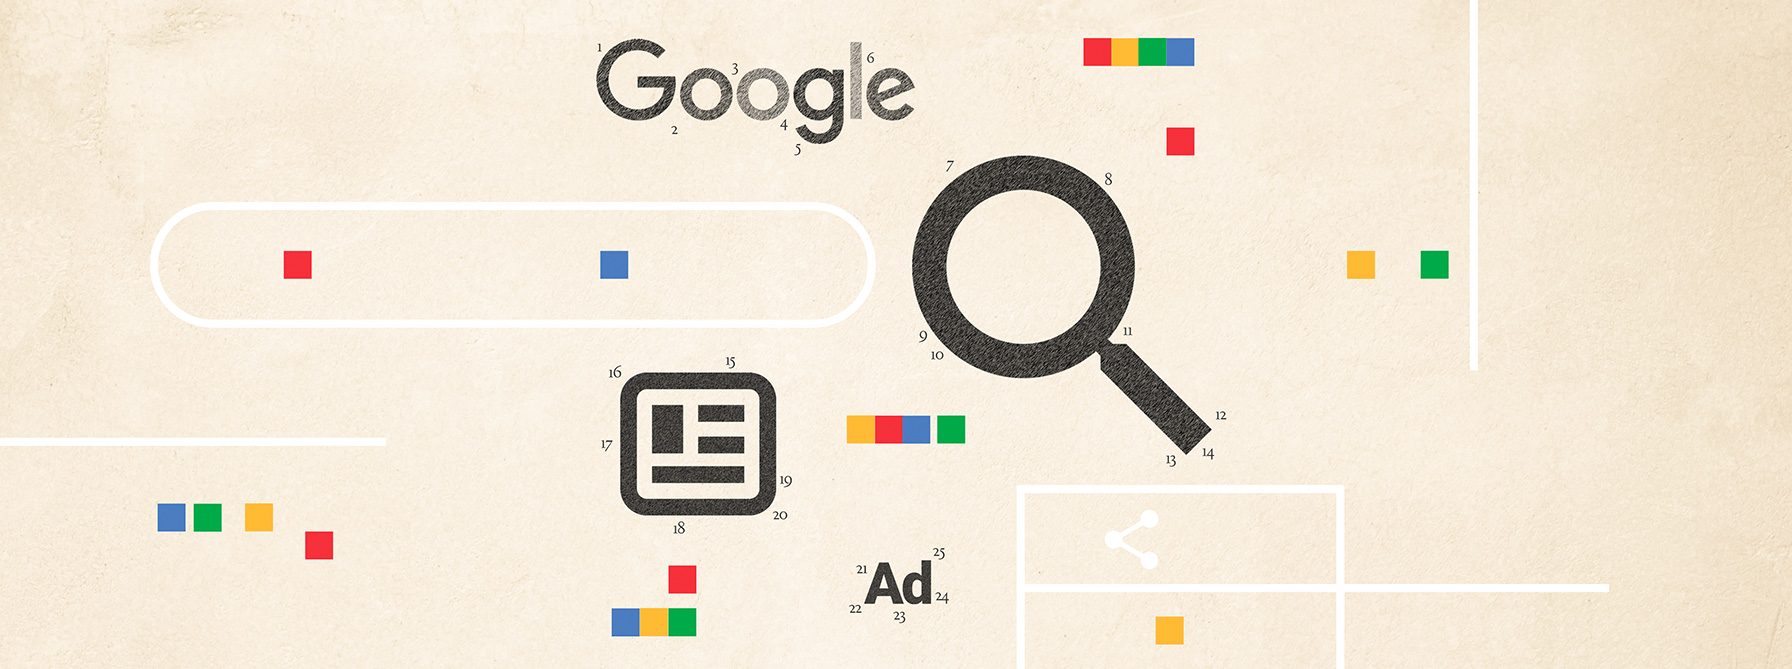 The anatomy of a Google search results page